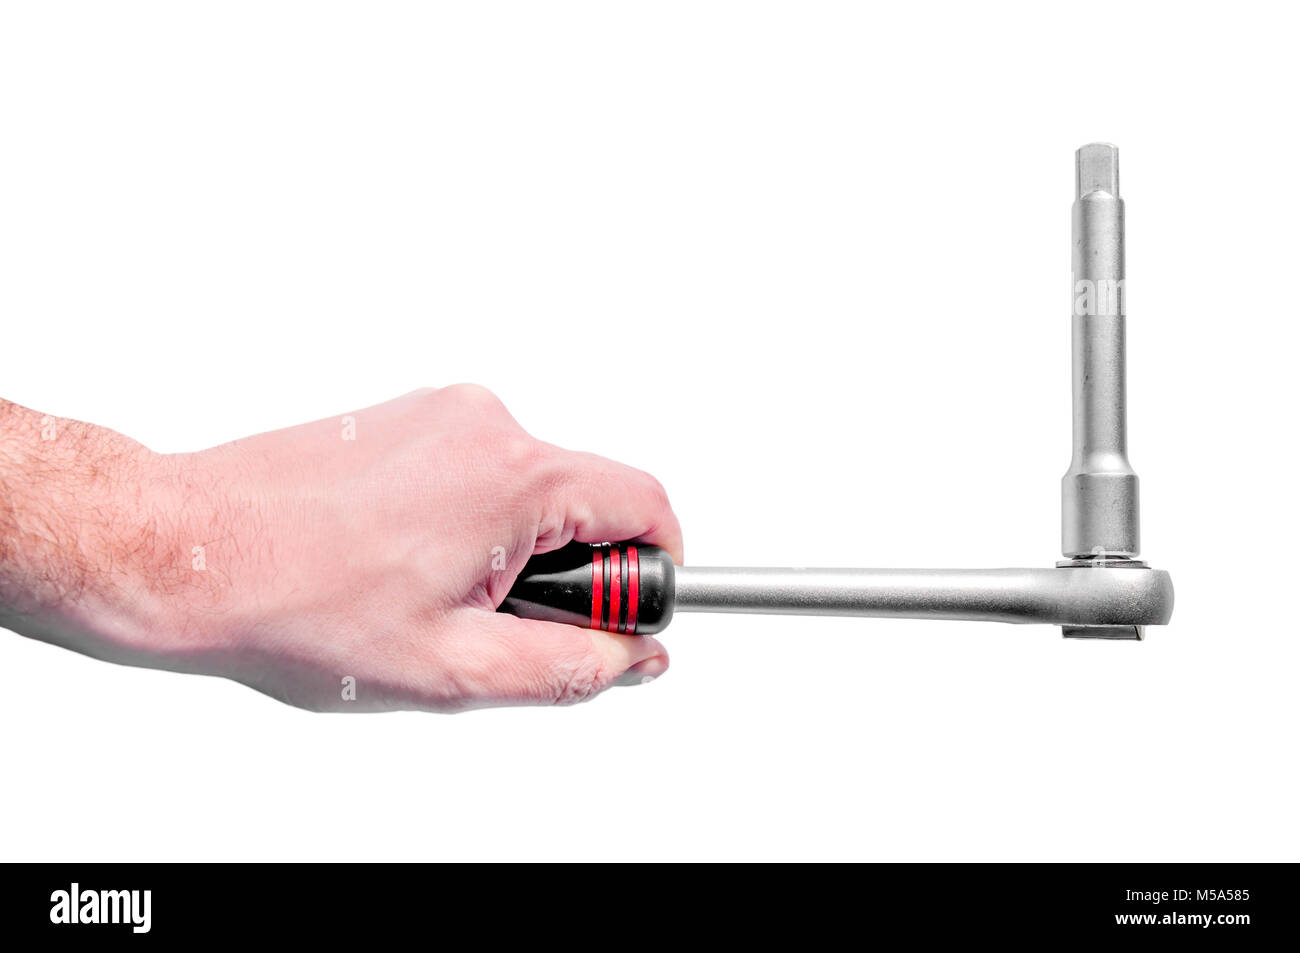 Hand holding automotive mechanic tool for maintenance and repair wernch with replaceable head - Stock Image